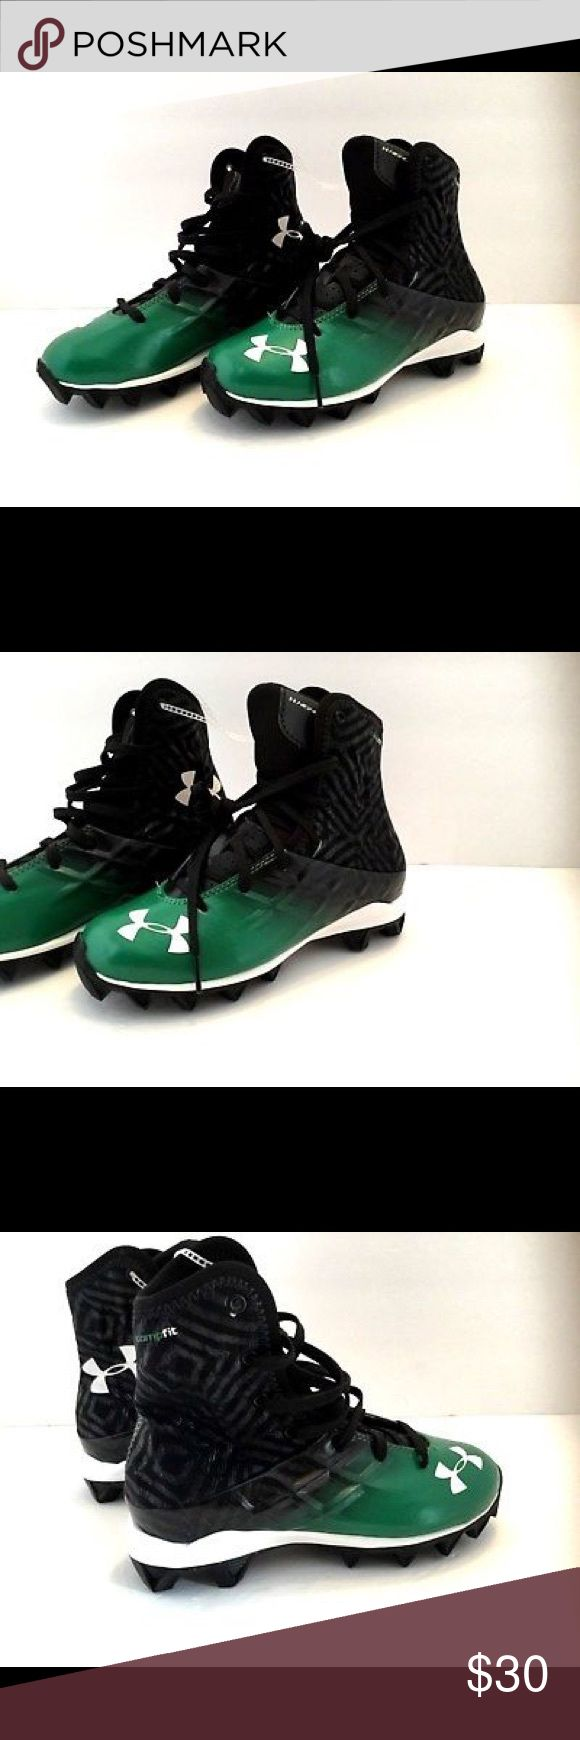 UA Highlight Youth Football Cleat Sz 2Y Green/Blk Under Armour Highlight Youth Boys Football Cleats Size 2Y Green/Black. New. No box. Ships in one business day. Under Armour Shoes